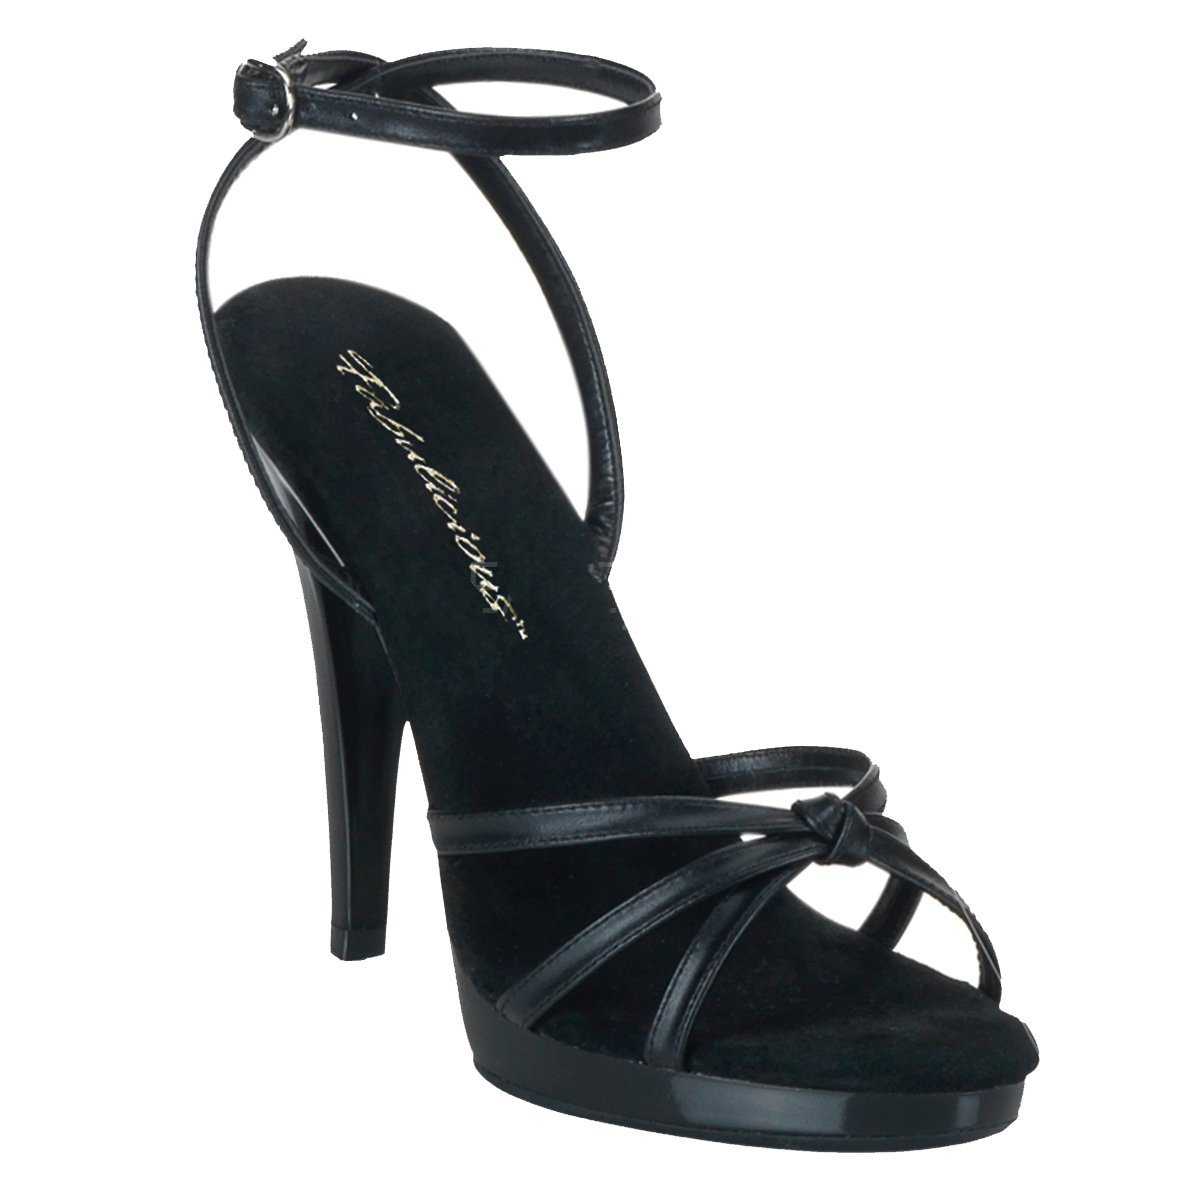 Pleaser Women's Flair-436/W/M Platform Sandal B00HV9ZOUE 12 B(M) US|Black Leather/Black